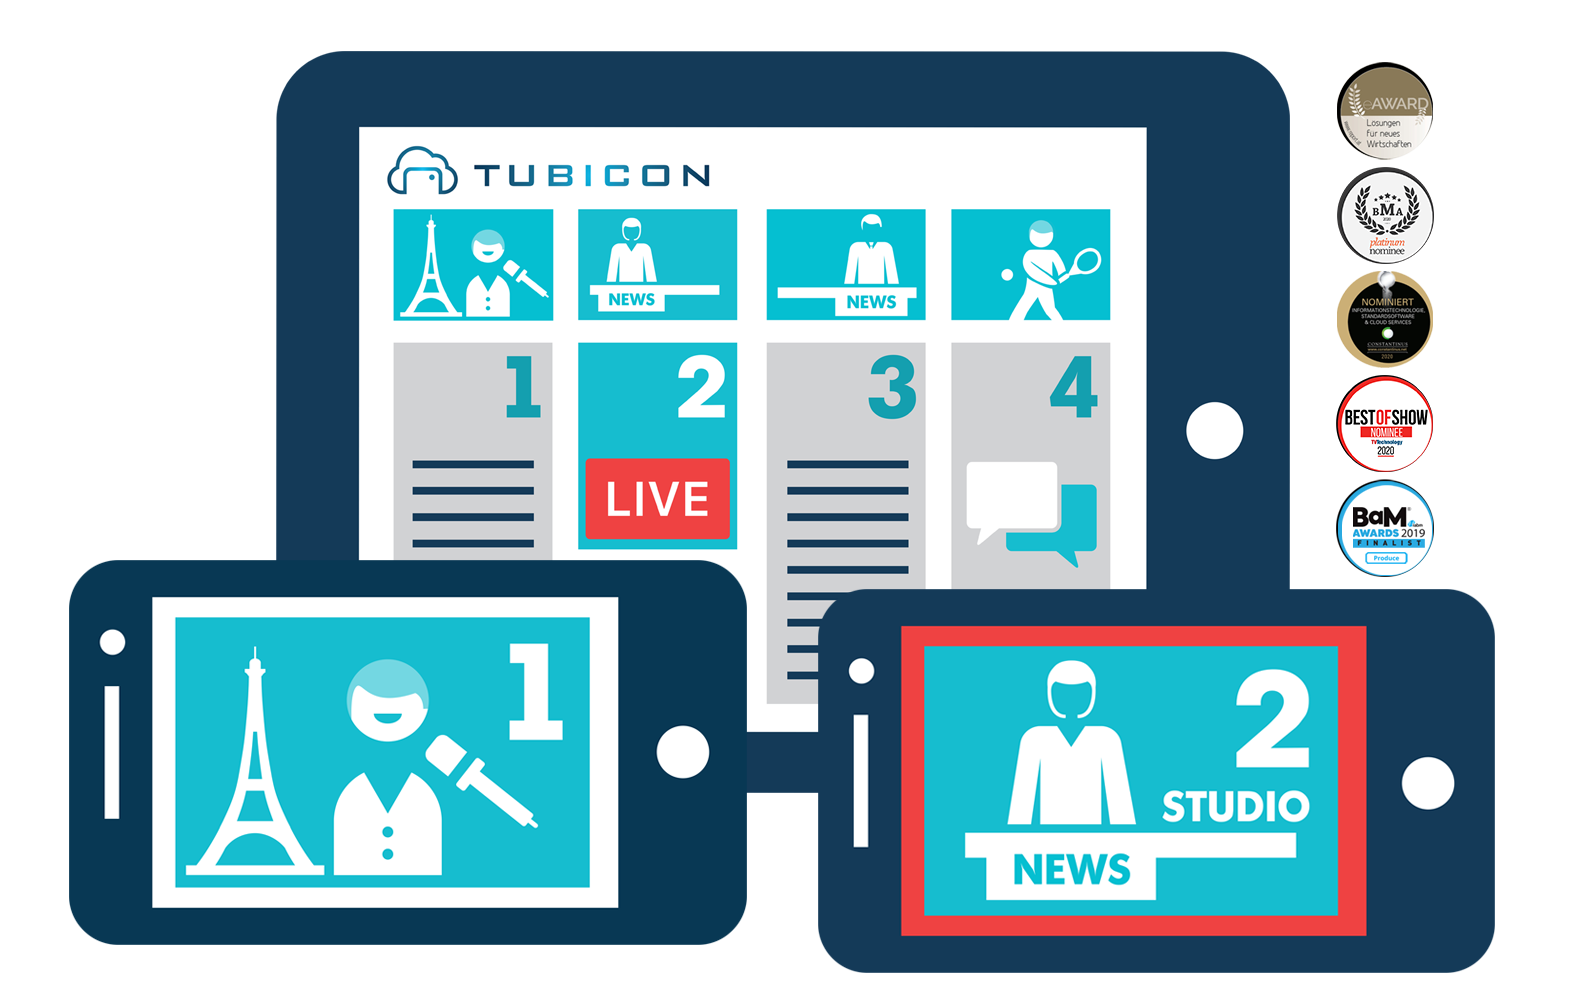 TUBICON app with awards